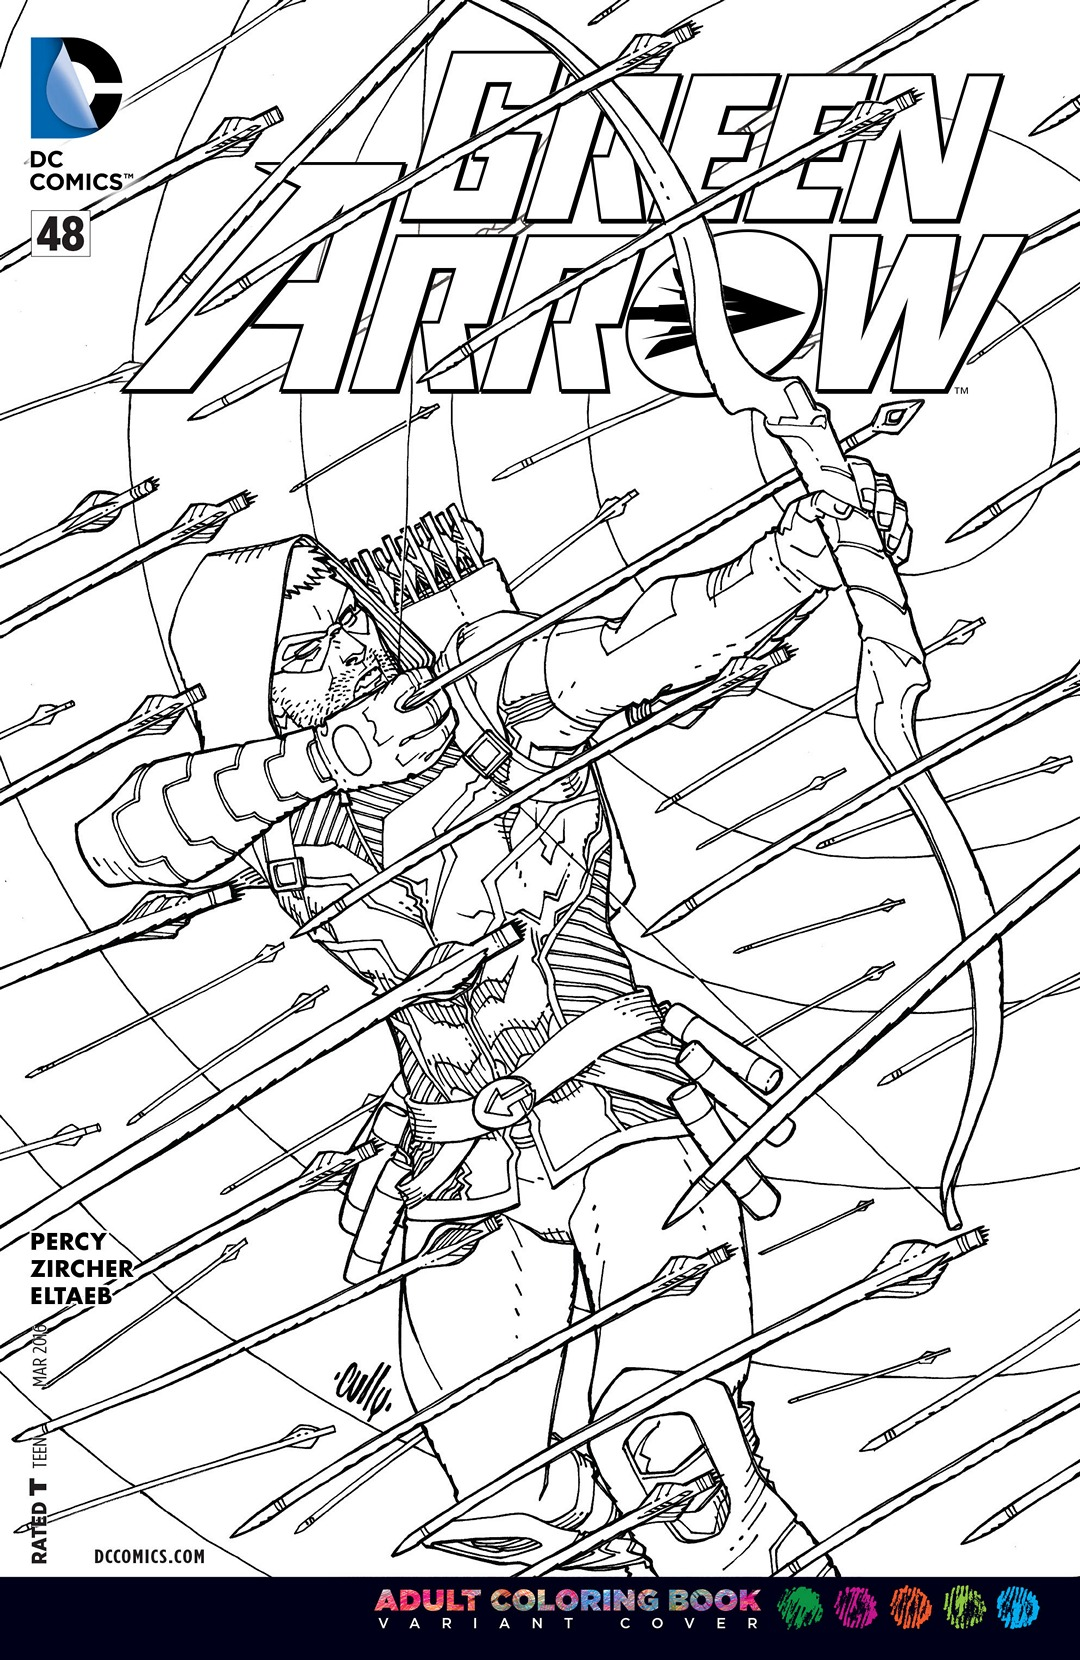 Green Arrow Vol 5 48 Adult Coloring Book Variant